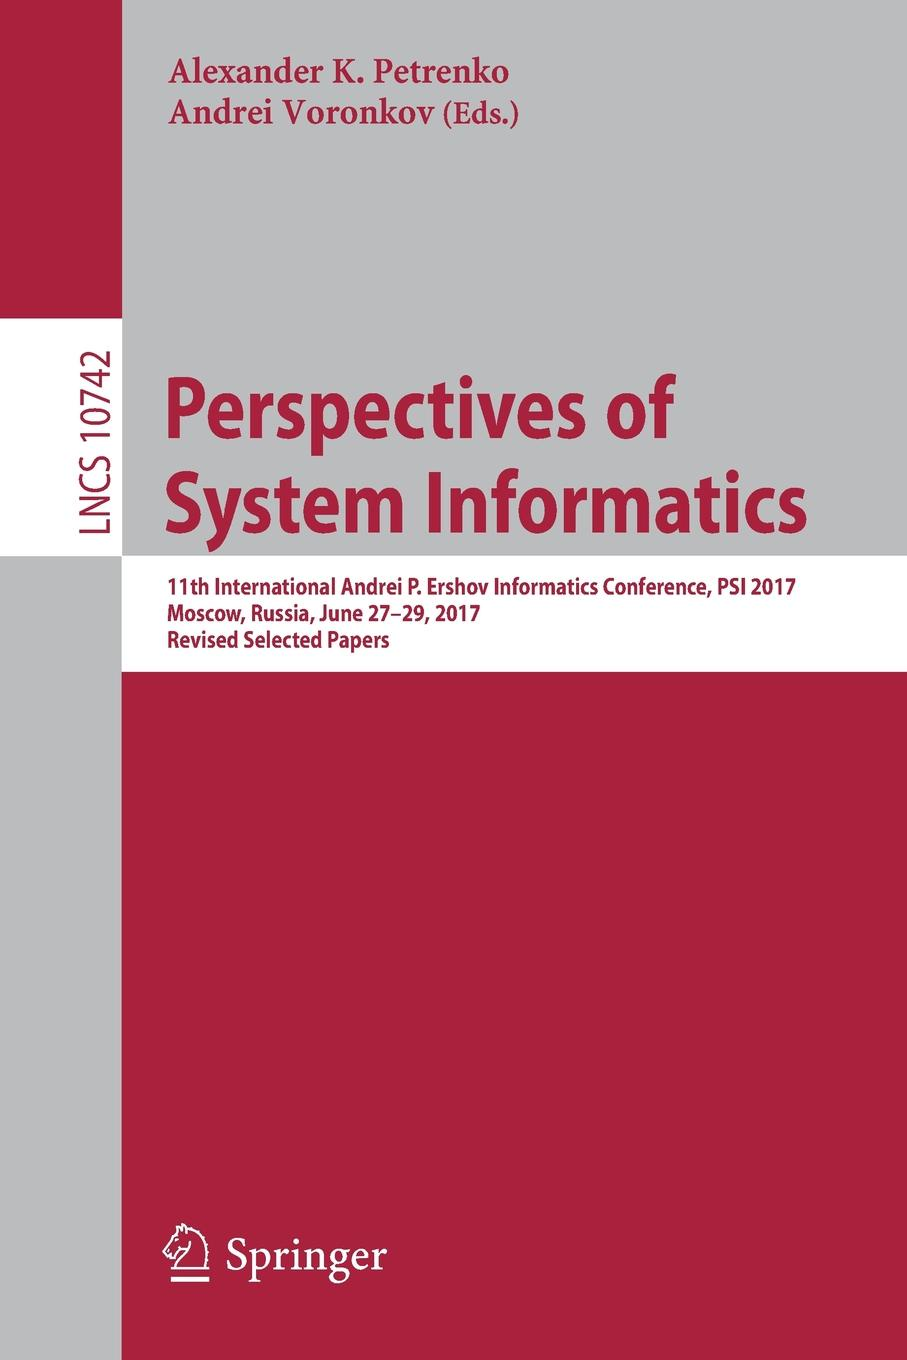 Perspectives of System Informatics. 11th International Andrei P. Ershov Informatics Conference, PSI 2017, Moscow, Russia, June 27-29, 2017, Revised Selected Papers andrei hvostov sillamäe passioon